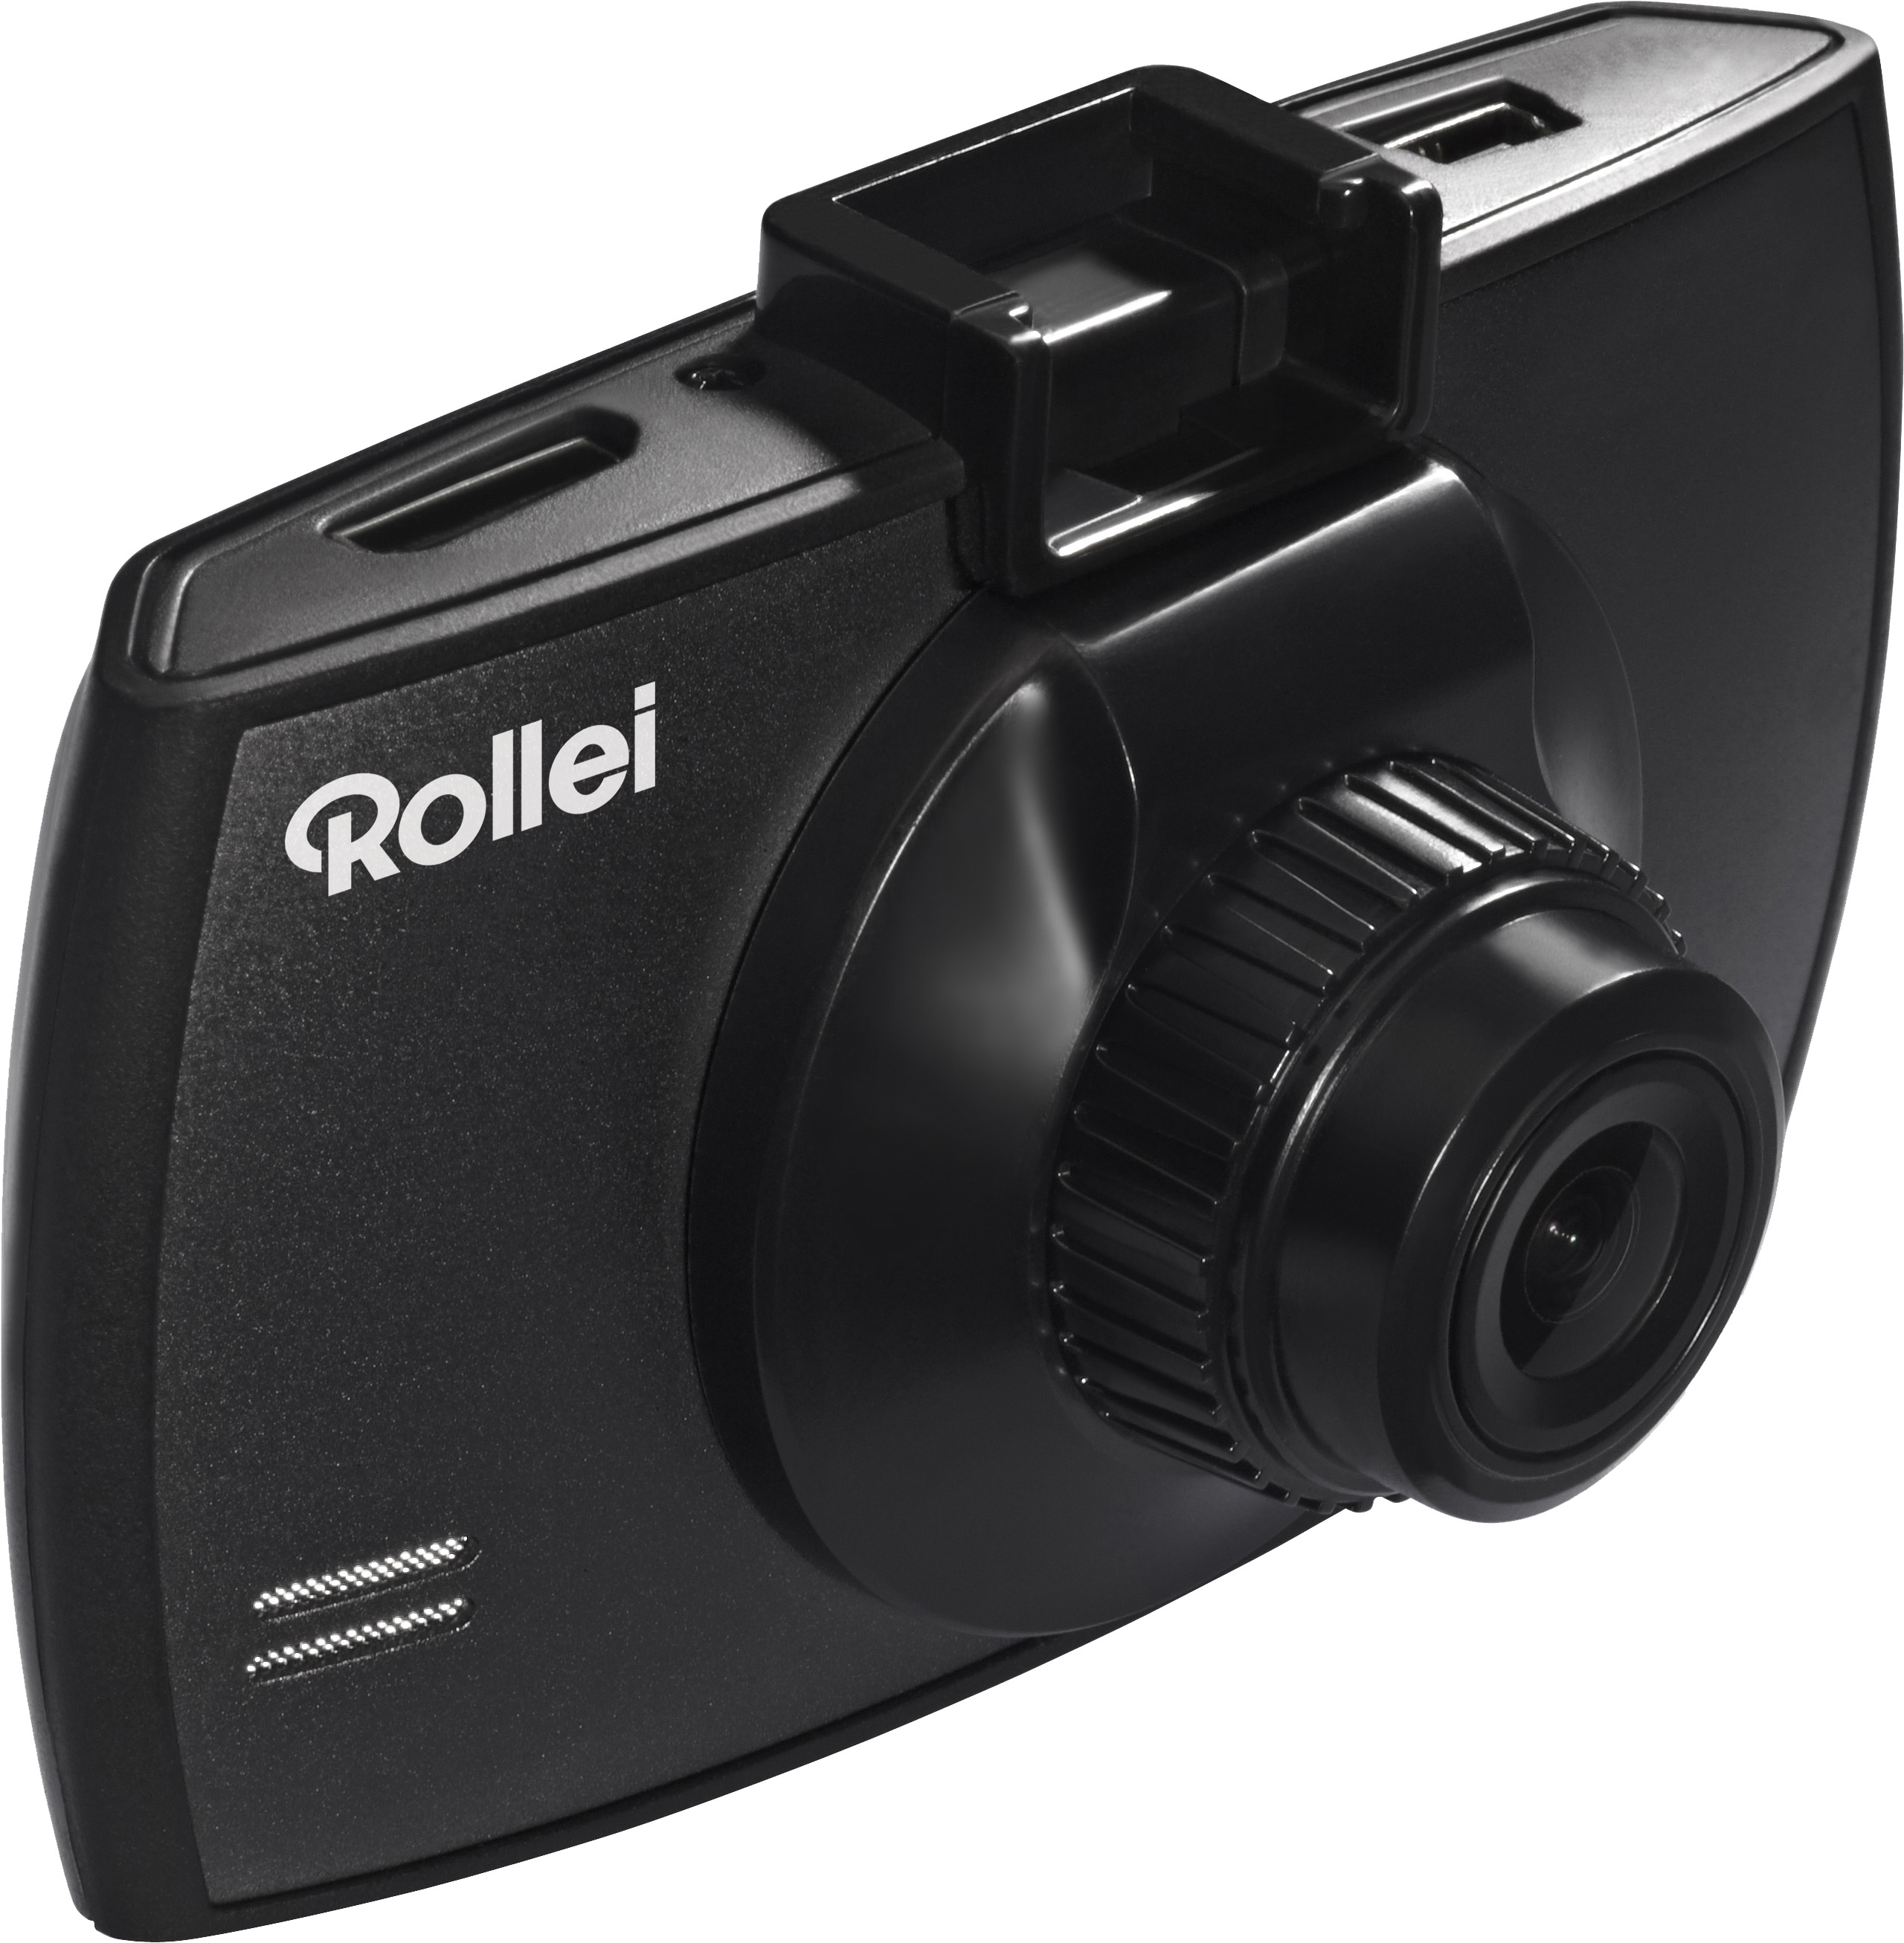 rollei stellt neue dashcam modelle vor dashcam test 2018. Black Bedroom Furniture Sets. Home Design Ideas